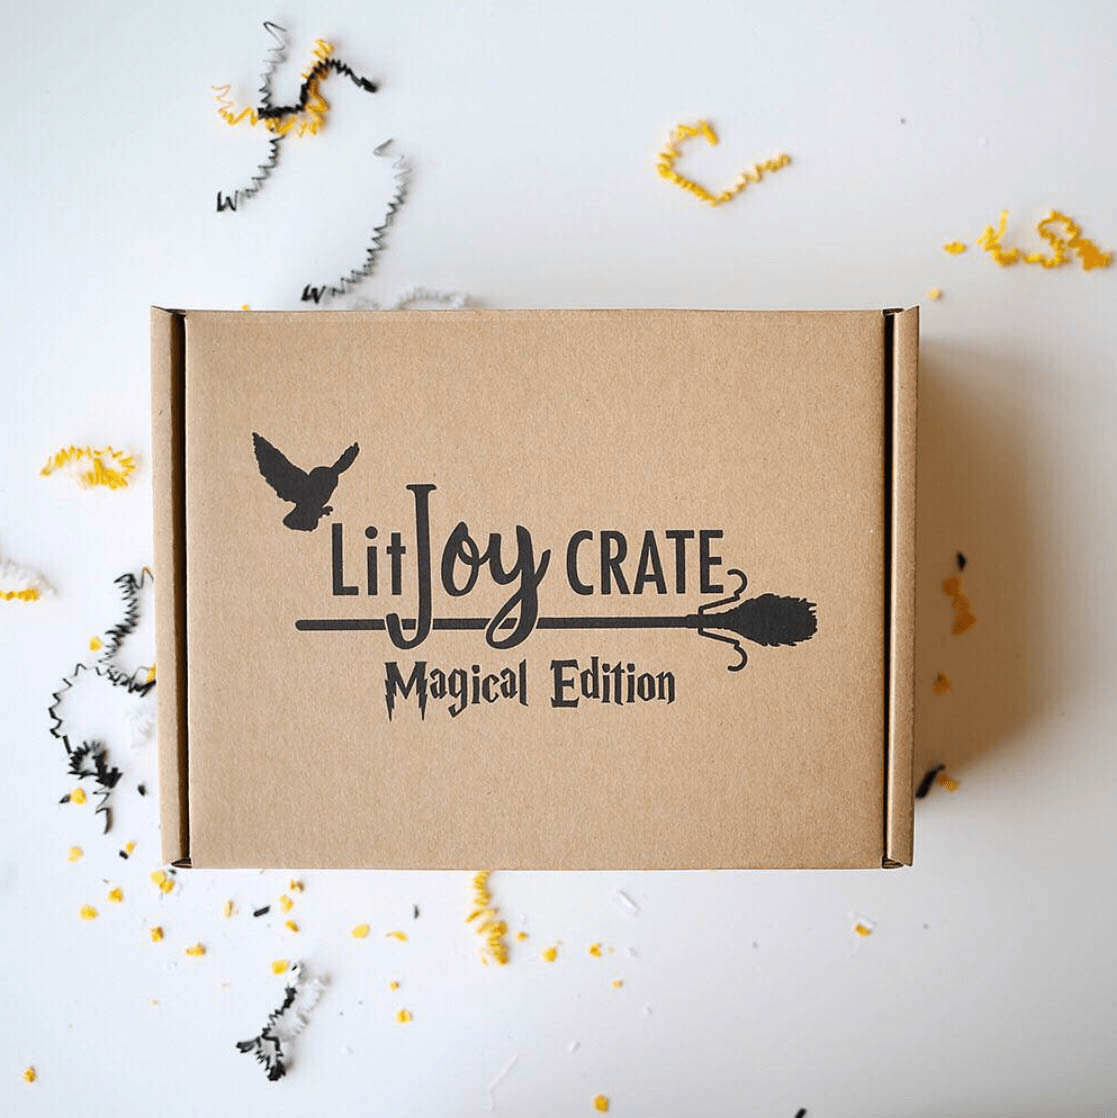 LitJoy Crate Magical Edition Year Five Box Coming Soon + Spoiler!